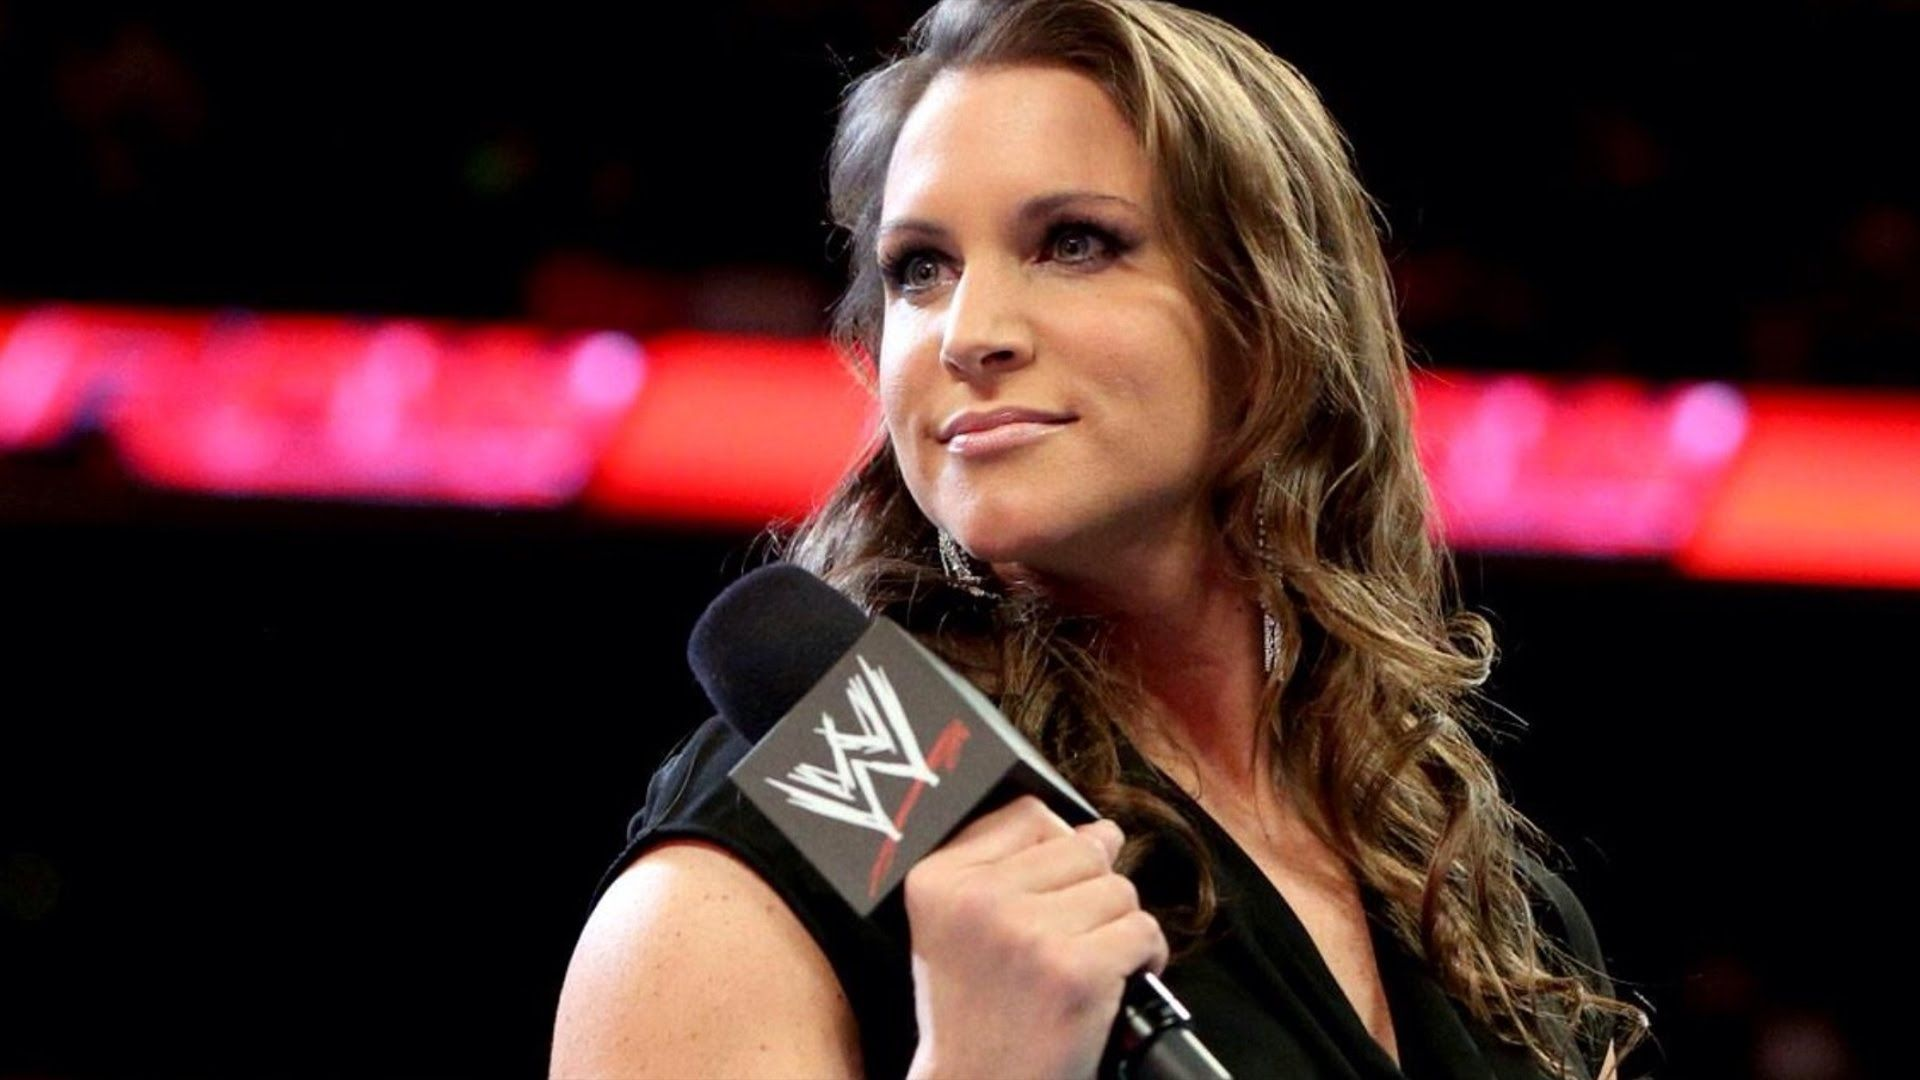 Stephanie Mcmahon Hd Wallpapers 8 Stephaniemcmahonhdwallpapers Stephaniemcmahon Wwe Wrestling Wwedivas Divas Babes Hotbabes Hotgirls Sexygirls